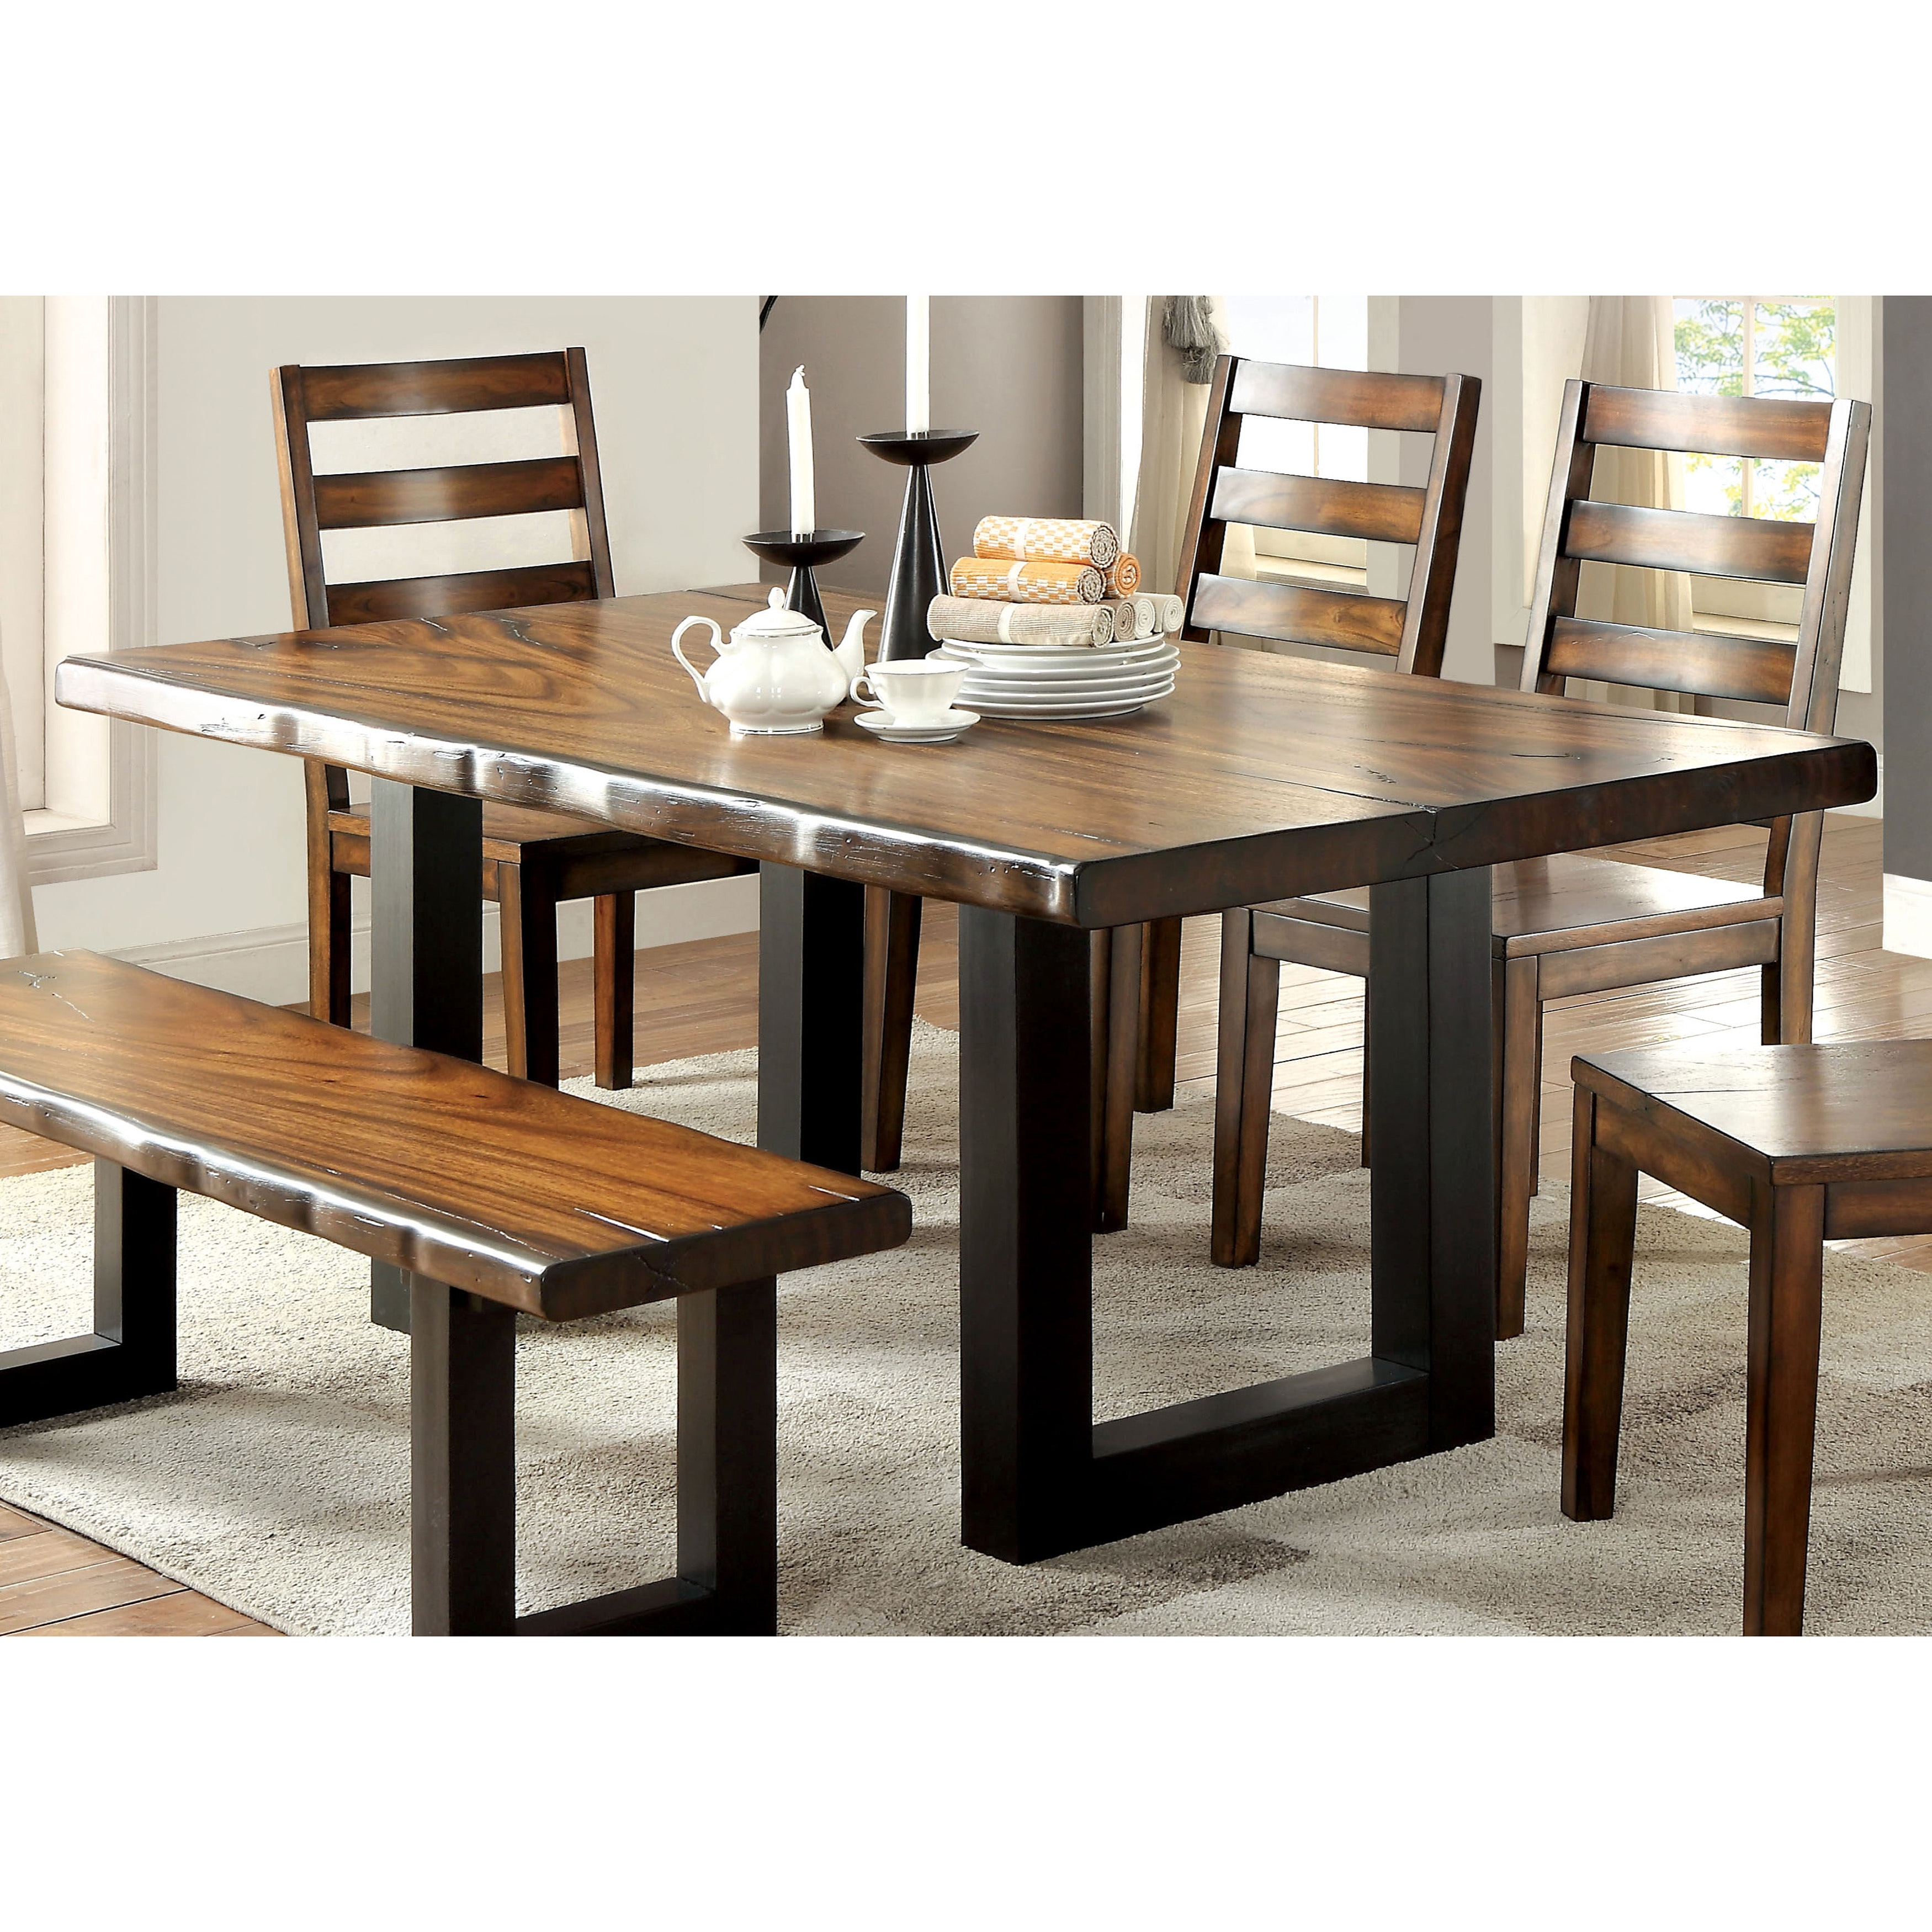 Furniture of America Divo Rustic Oak 72-inch Solid Wood Dining Table